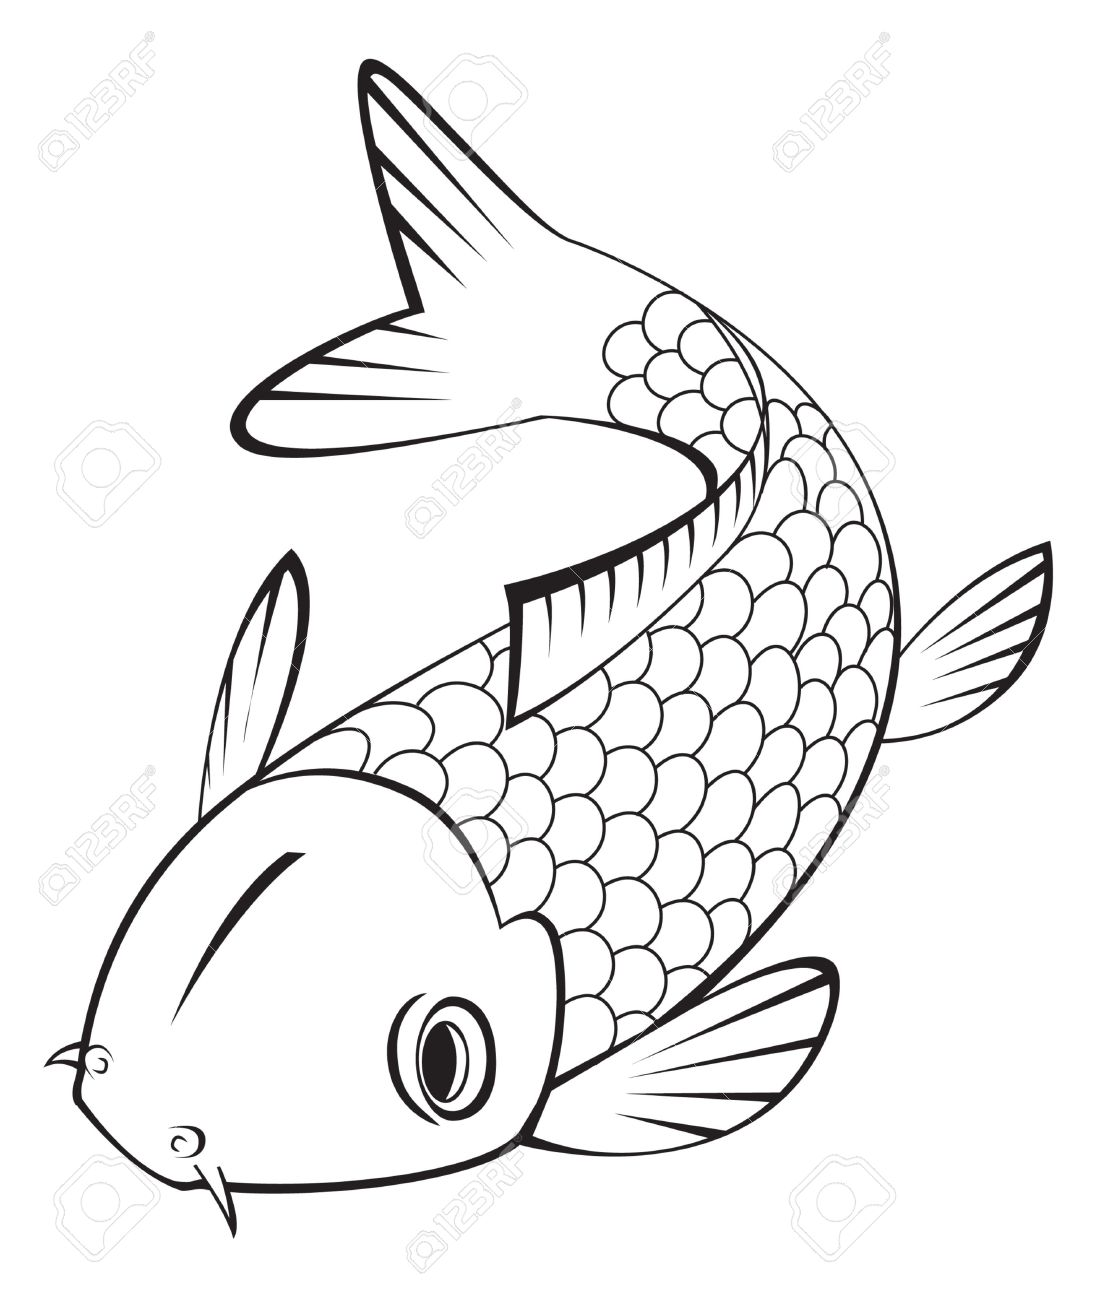 Koi Fish clipart #17, Download drawings